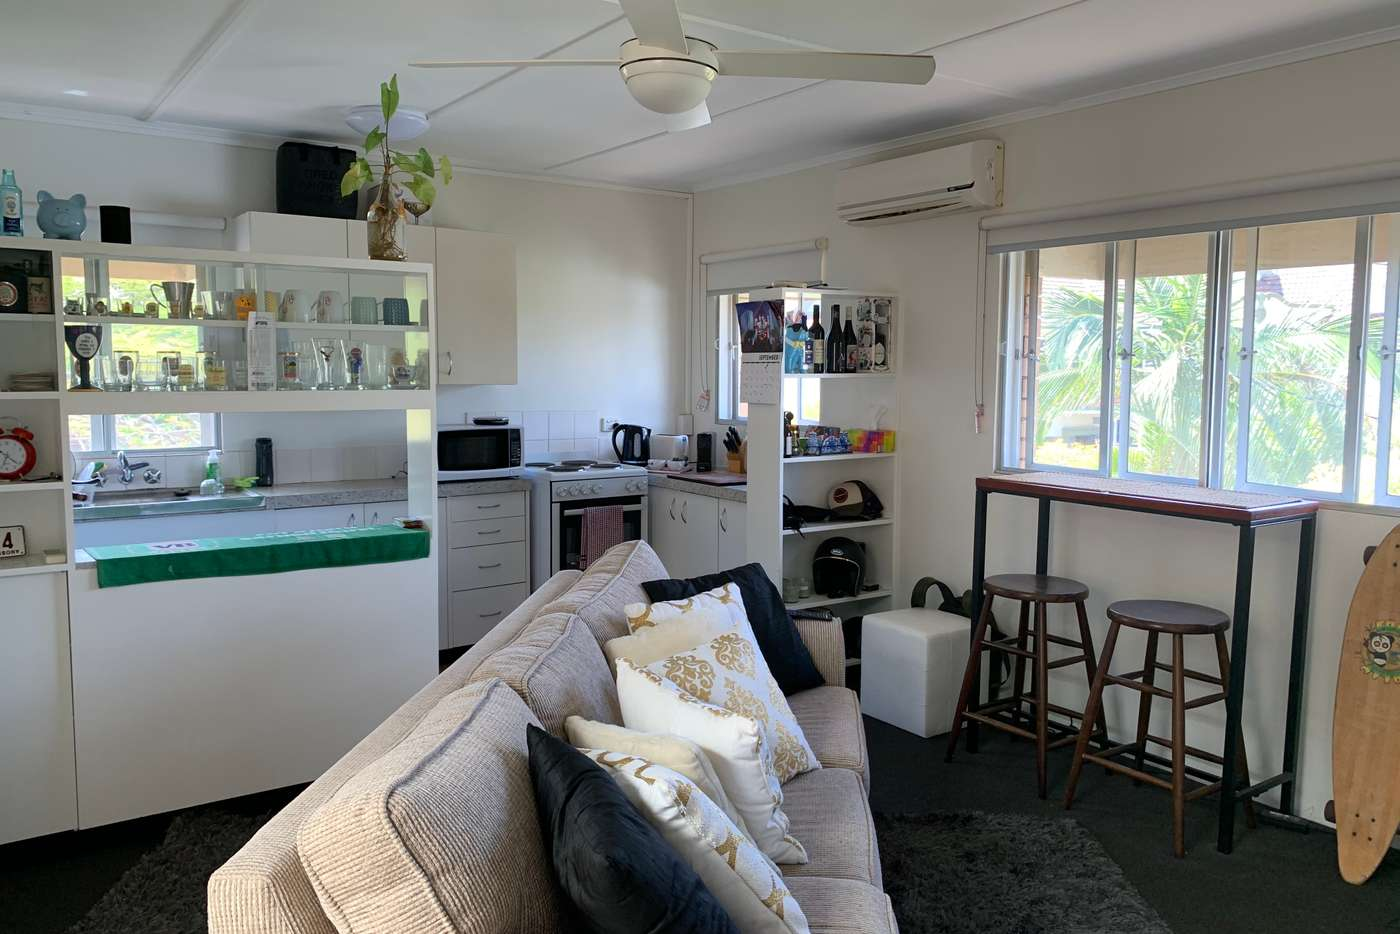 Main view of Homely apartment listing, 13/11 Llewellyn Street, New Farm QLD 4005